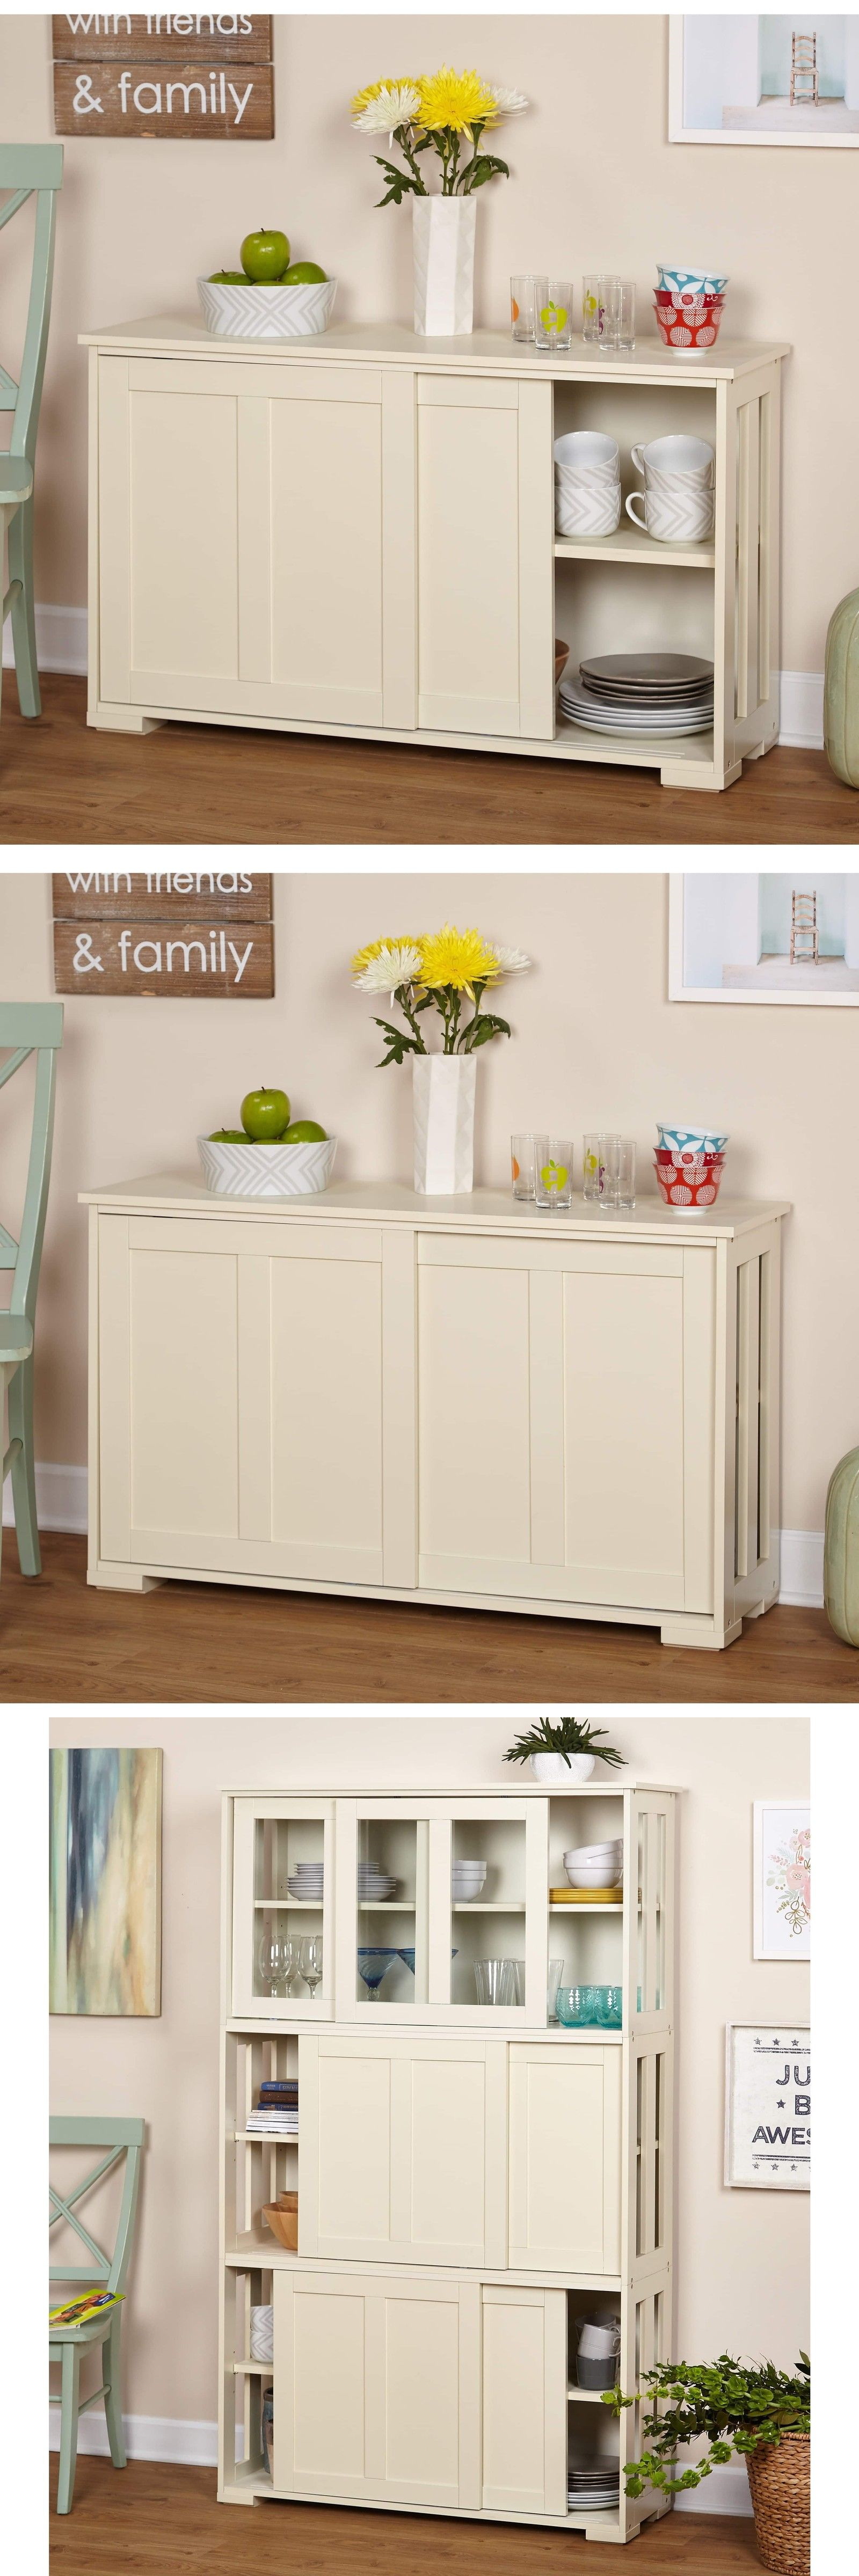 Sideboards and Buffets 183322: Kitchen Sideboard Buffet Server ...